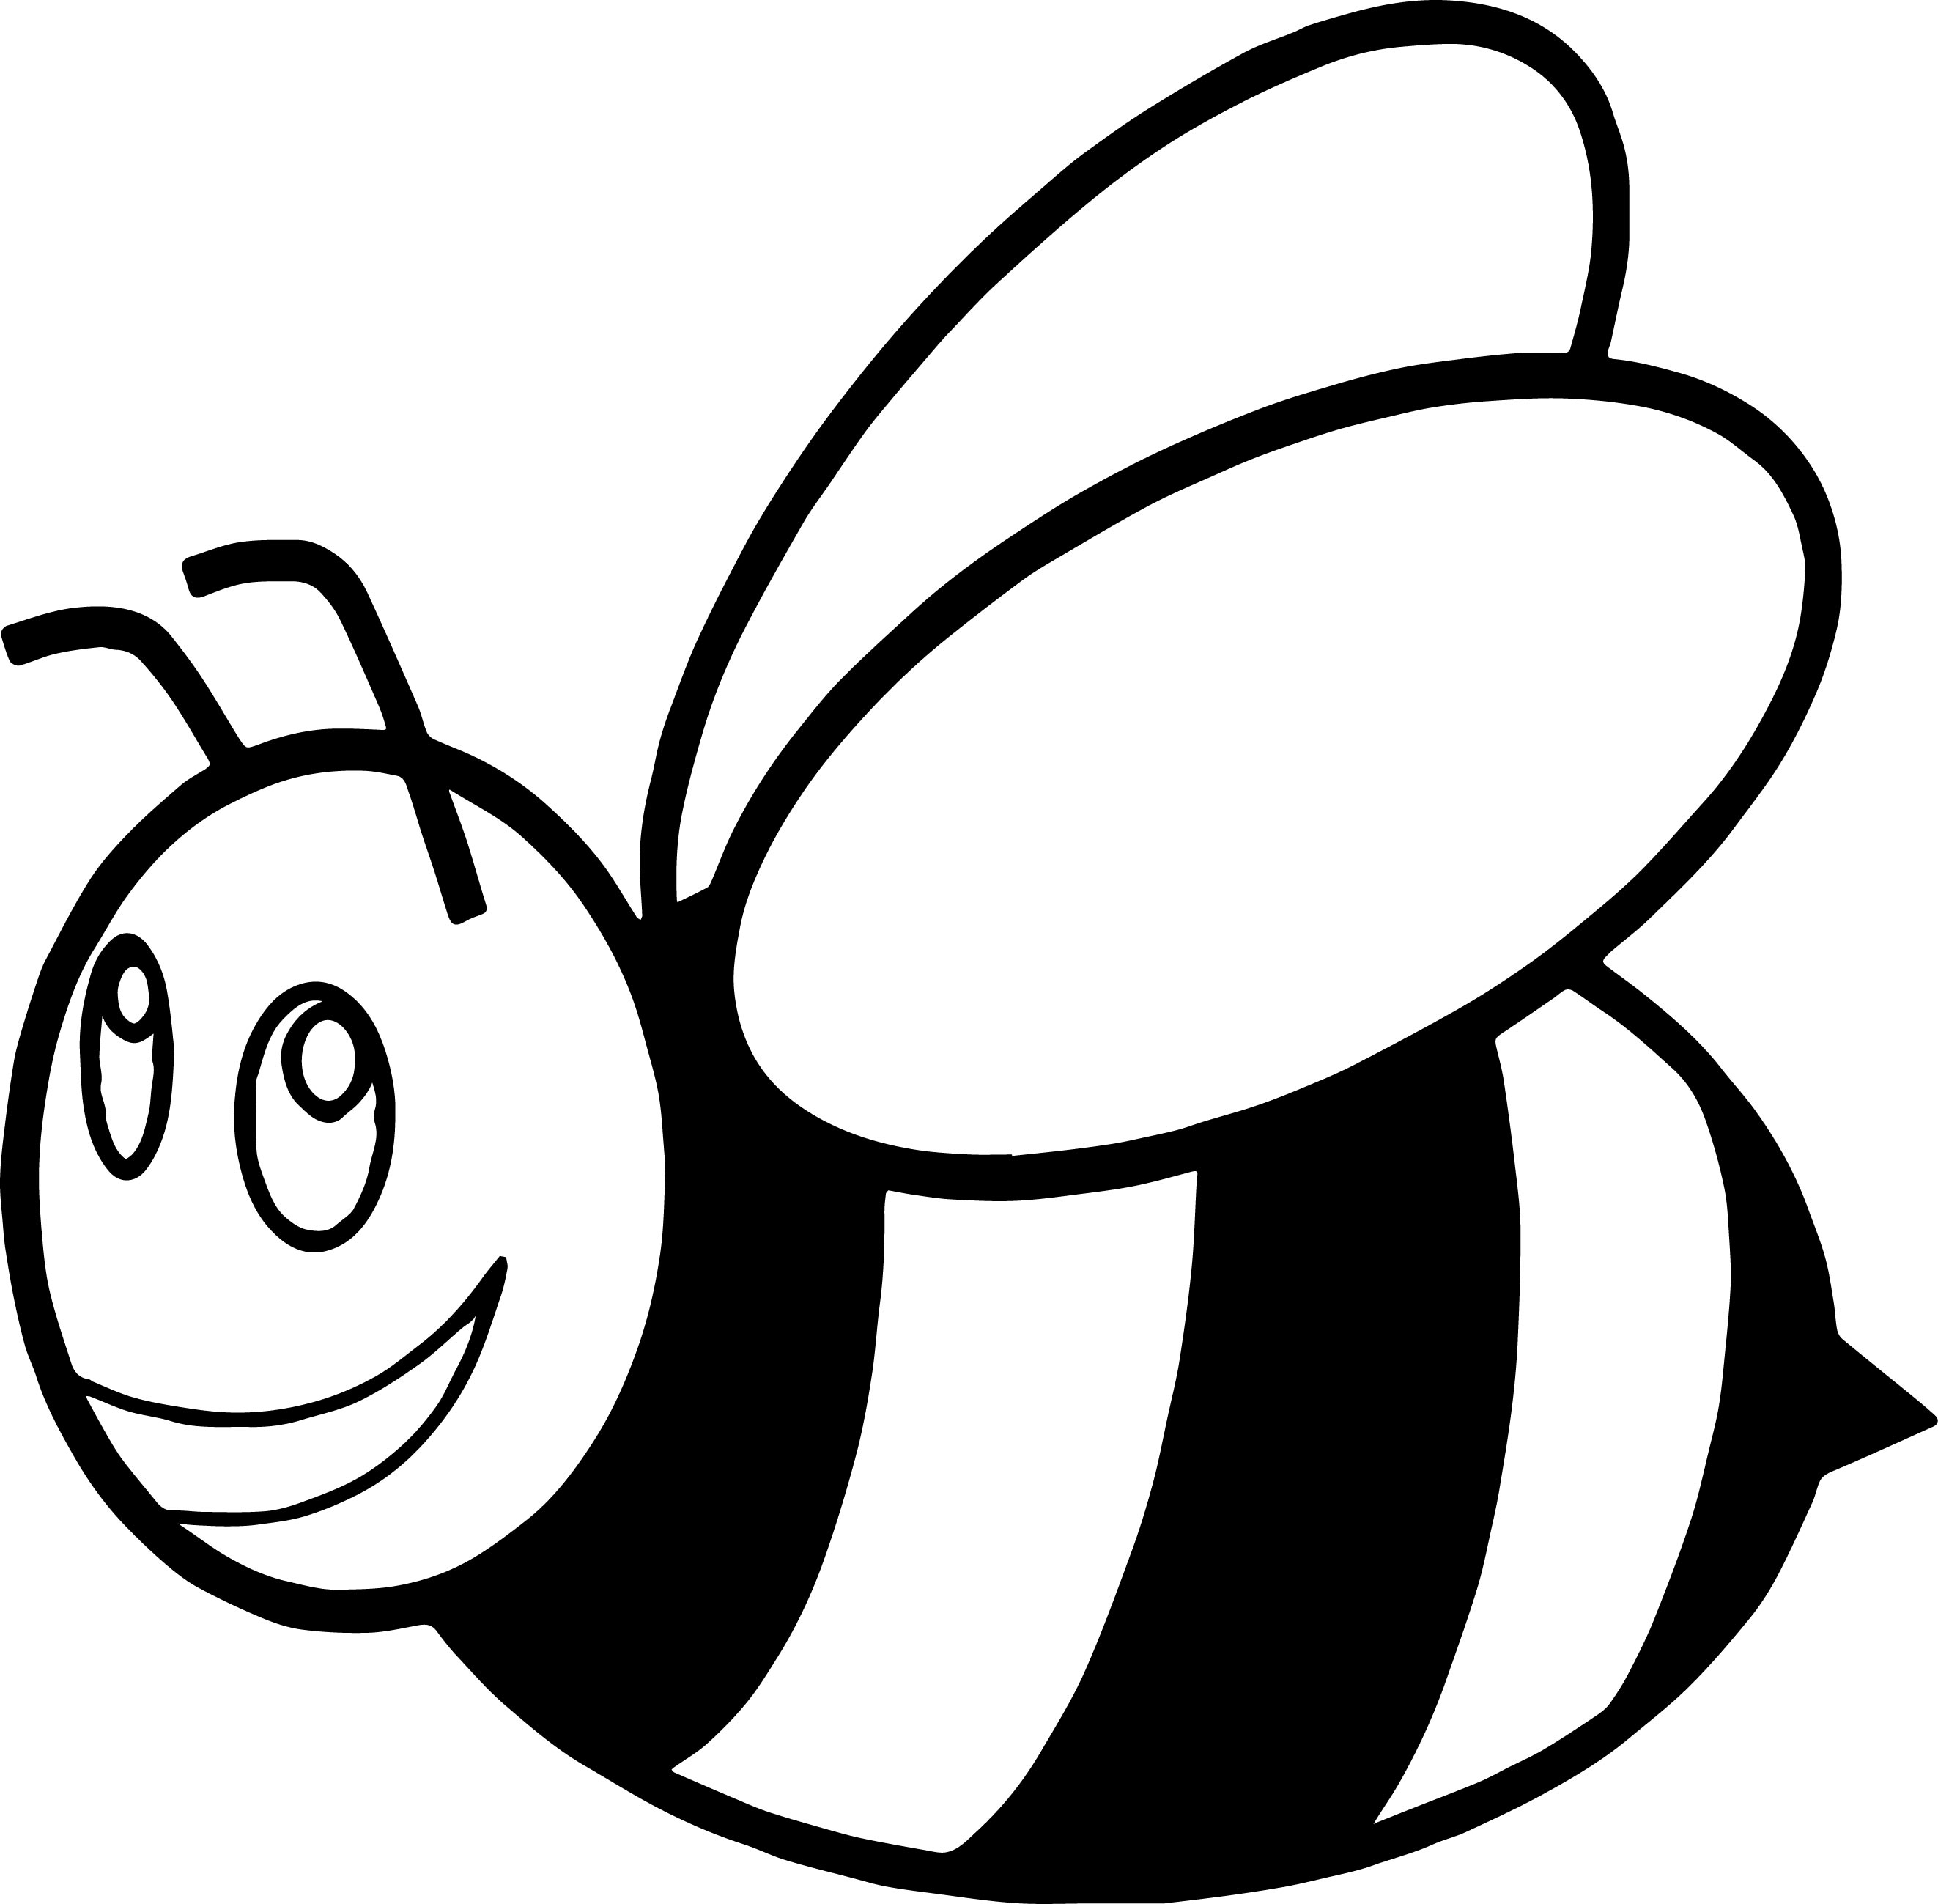 2645x2598 Bee Outline Coloring Pages